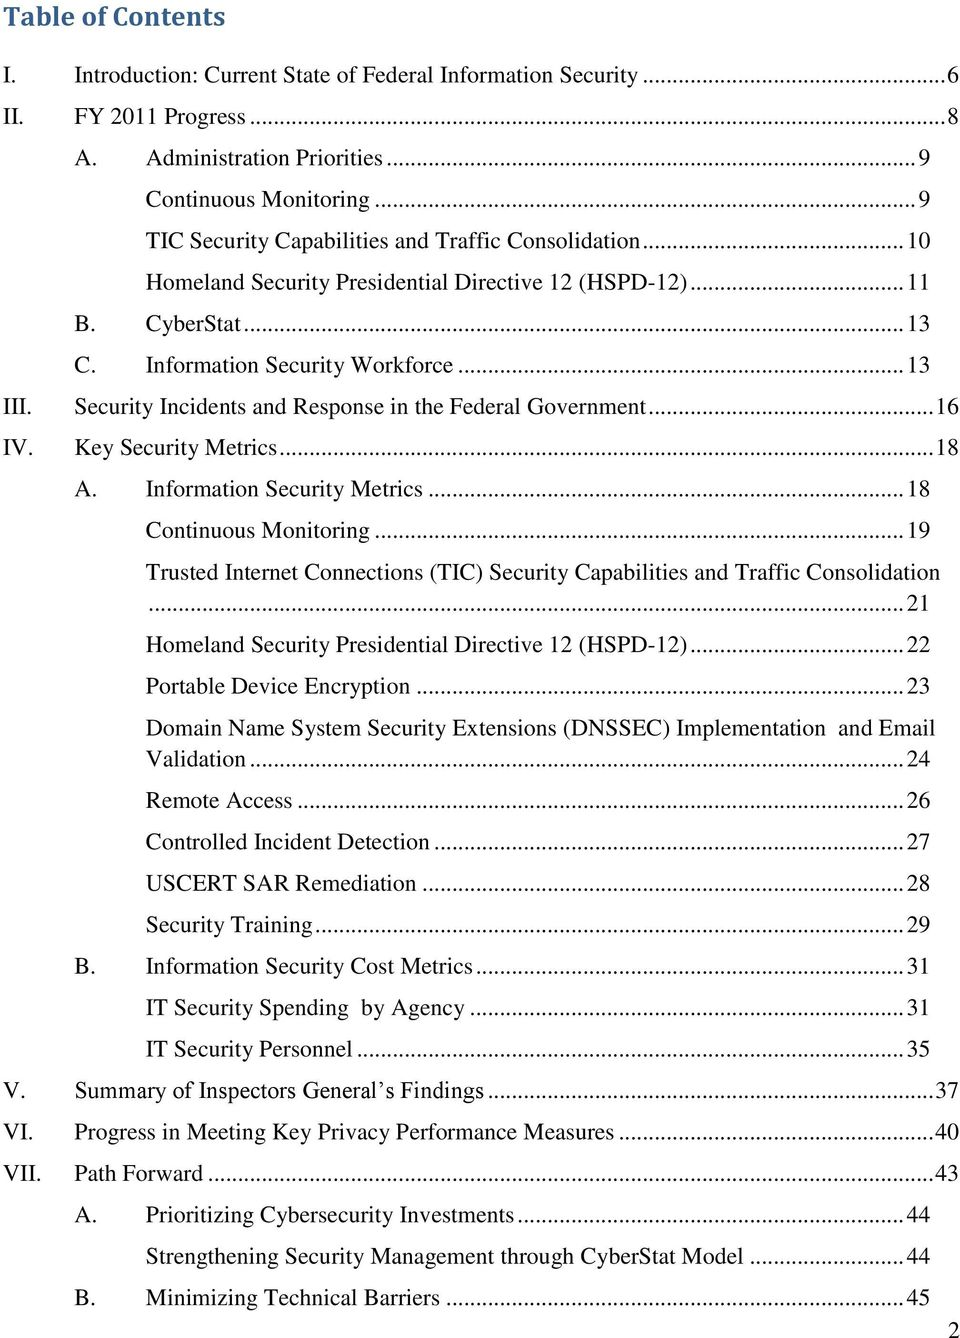 Security Incidents and Response in the Federal Government... 16 IV. Key Security Metrics... 18 A. Information Security Metrics... 18 Continuous Monitoring.